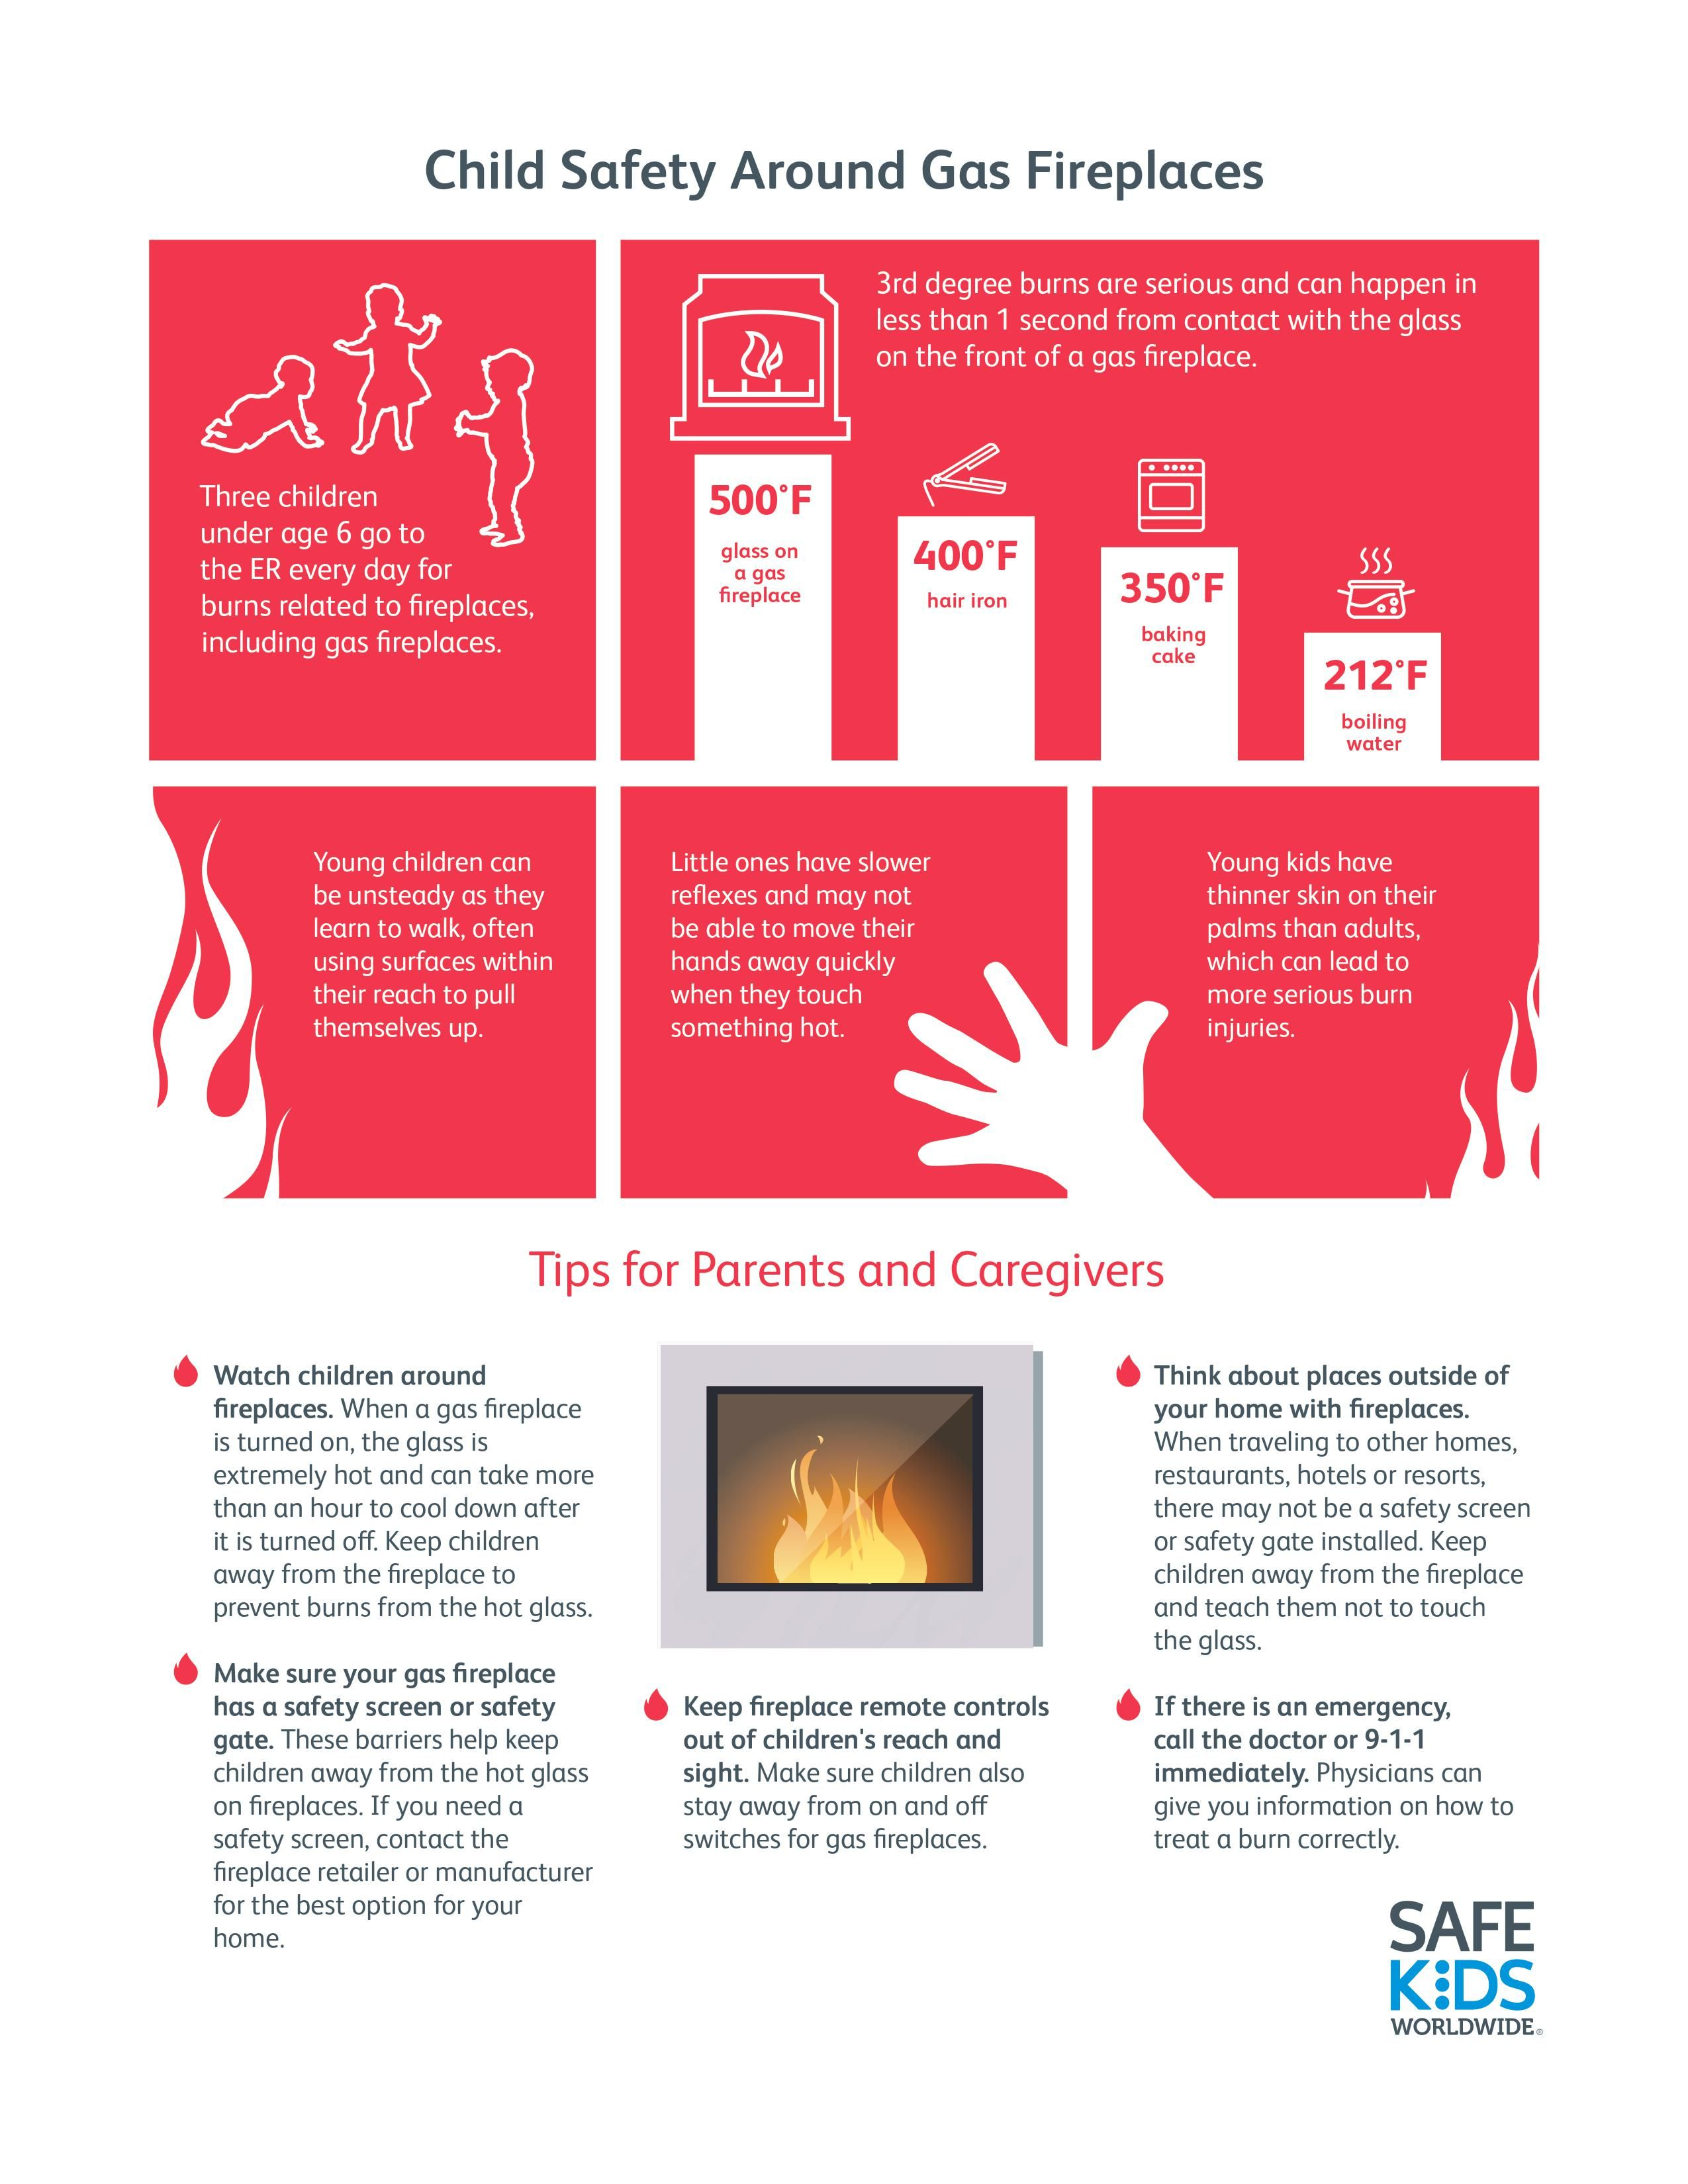 Fireplace Safety Infographic Fire safety tips